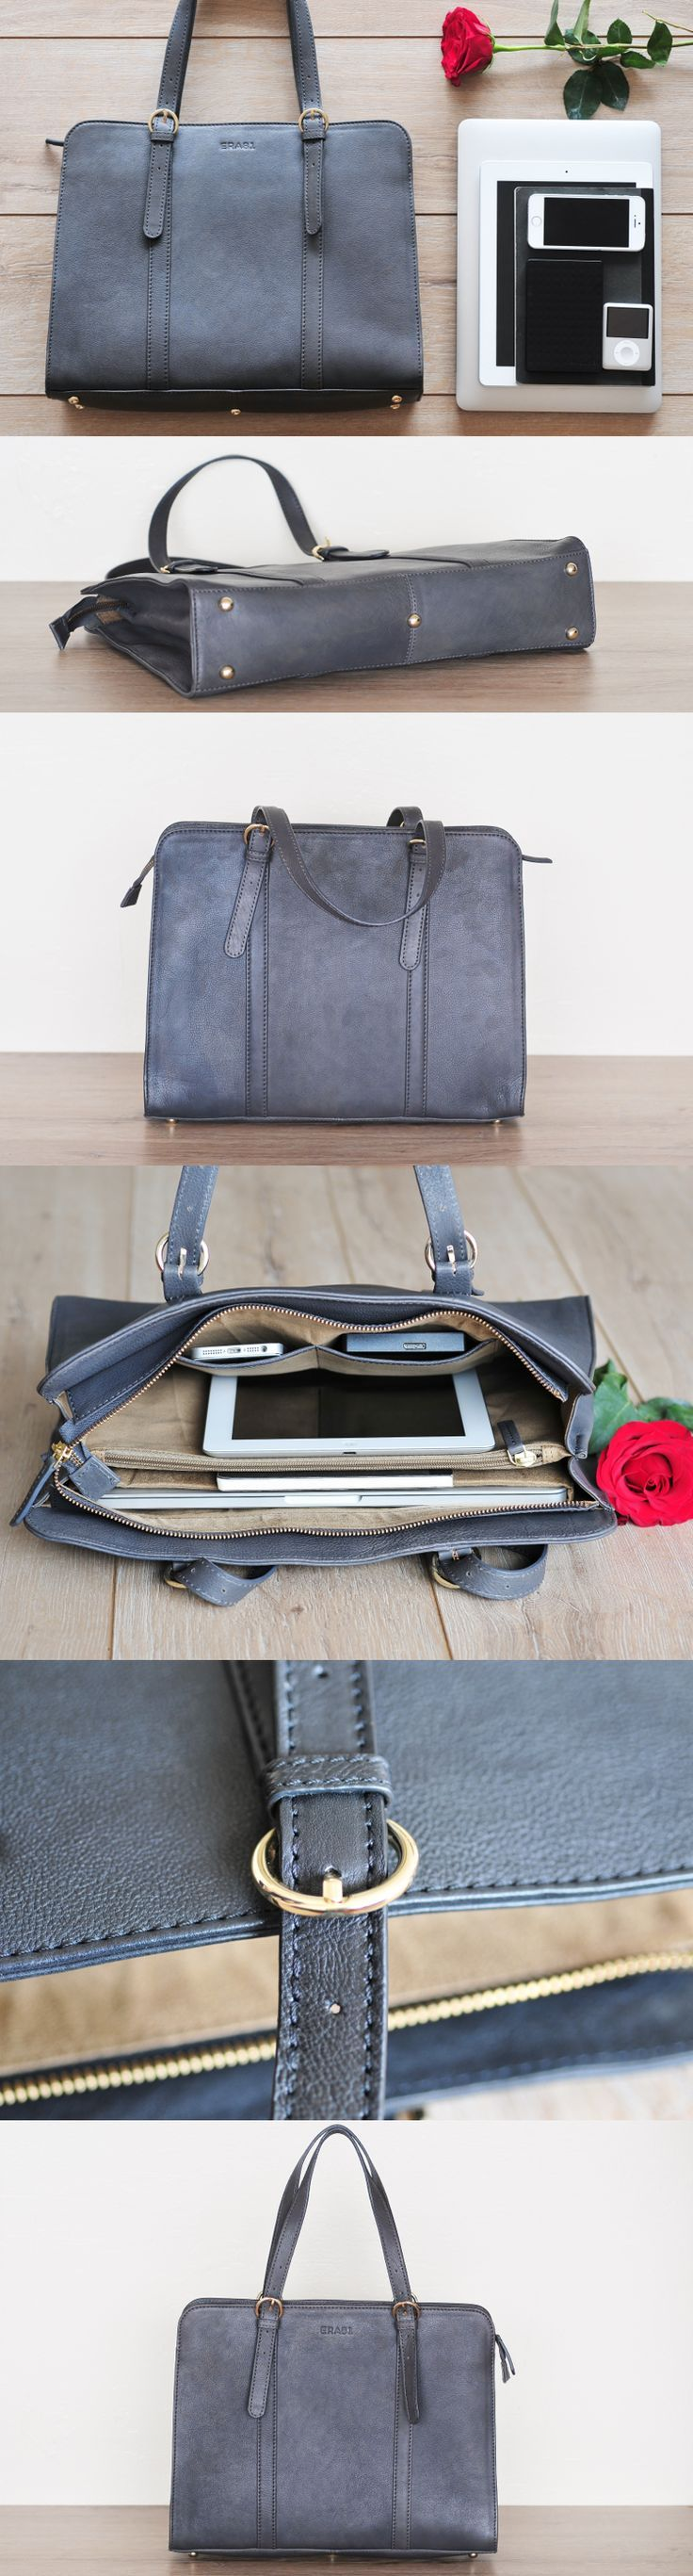 Exquisitely made in thick high quality premium vegetable tanned leather with soft suede fabric lining and golden tone industrial hardware, this multi-use laptop bag by #Era81 is an ultimate solution for a timeless business look.